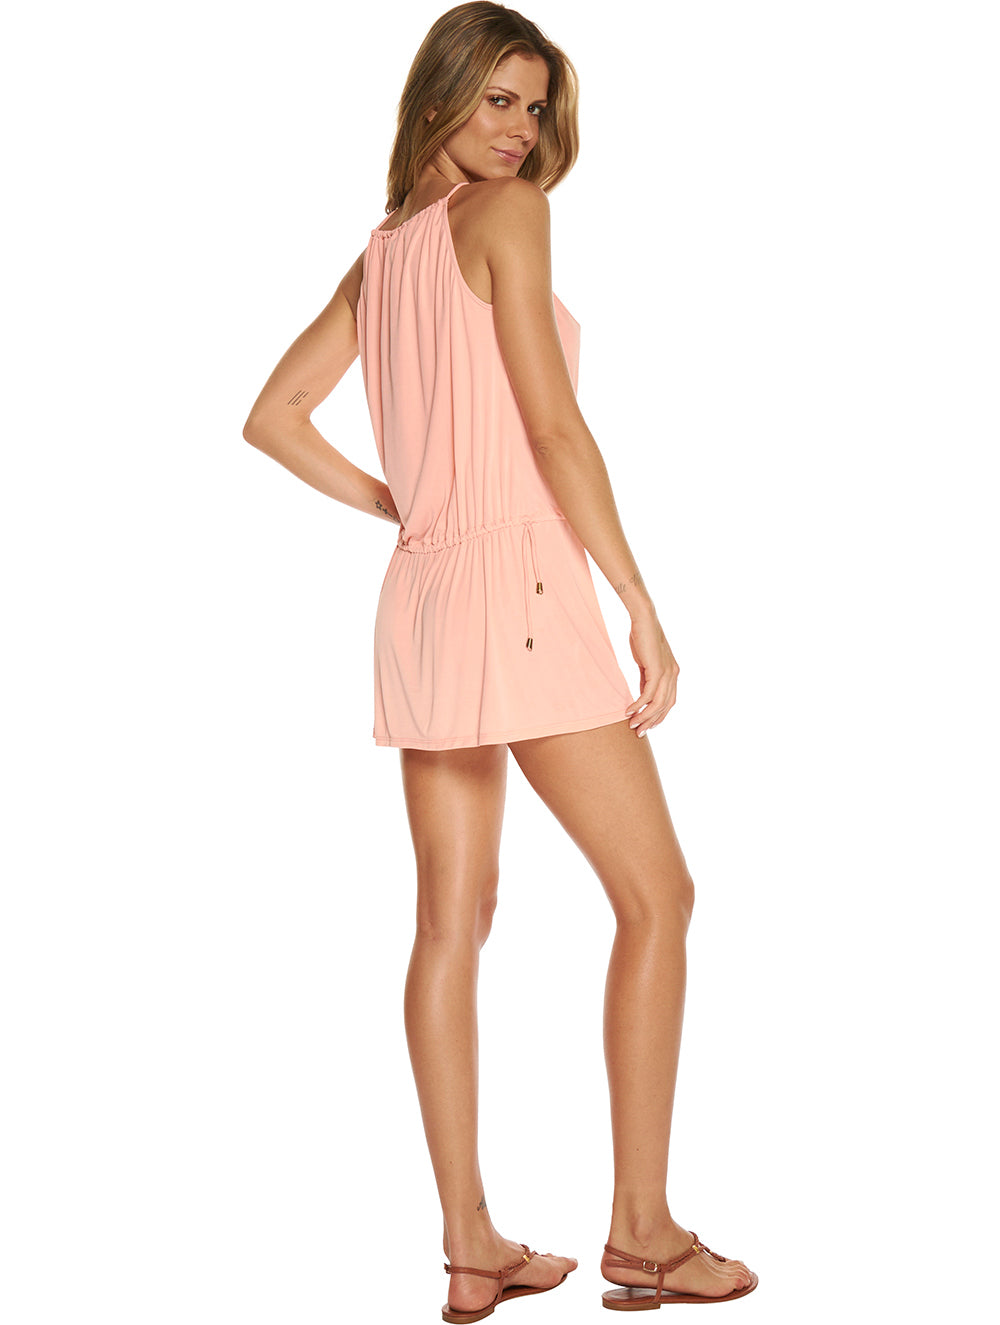 Solid Color Short Dress with Rounded Hem